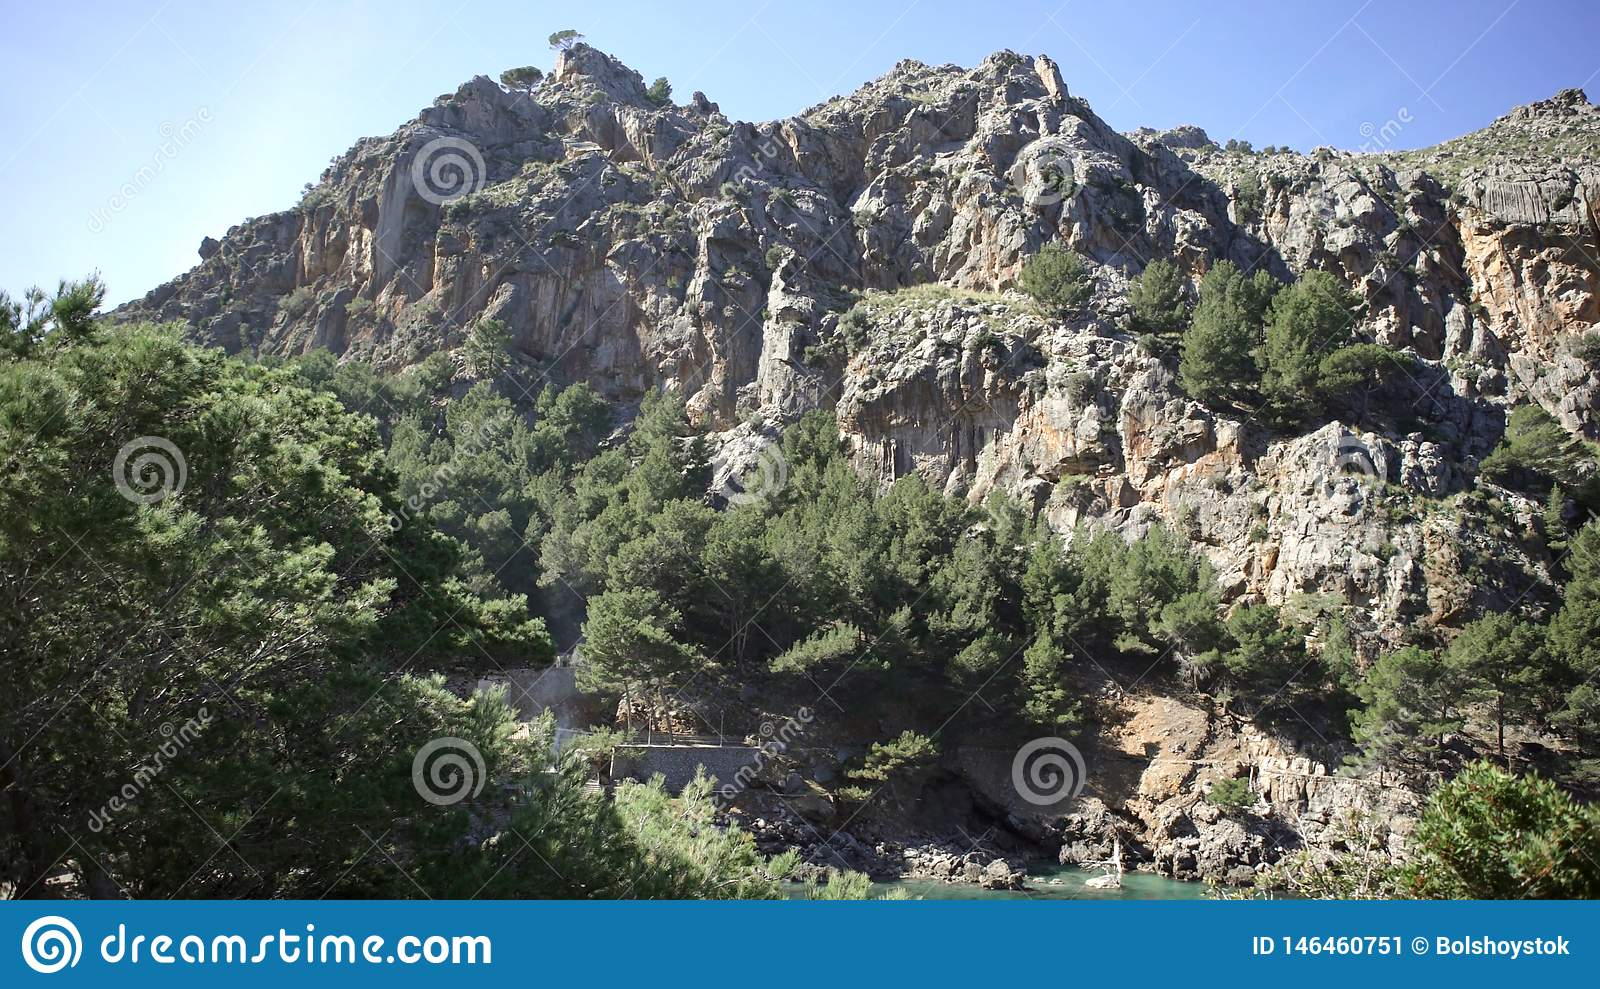 Mountain landscapes covered with green vegetation against blue sky. Art. Rocky cliff covered with trees and shrubs on